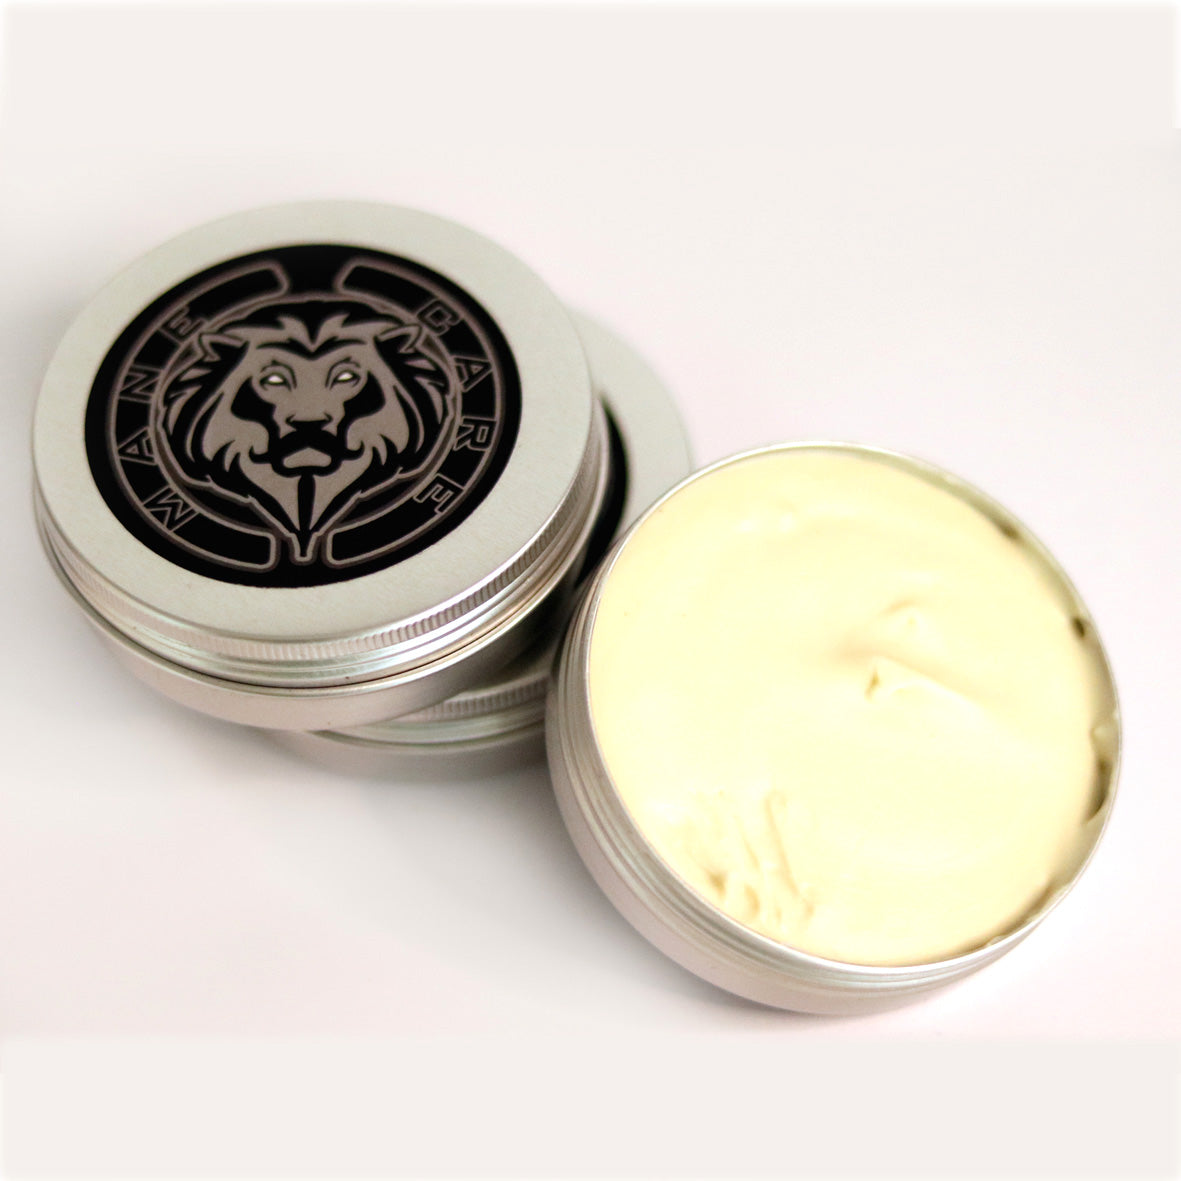 Grooming Cream, for men's beards, reduces coarseness and helps sculpt your beard